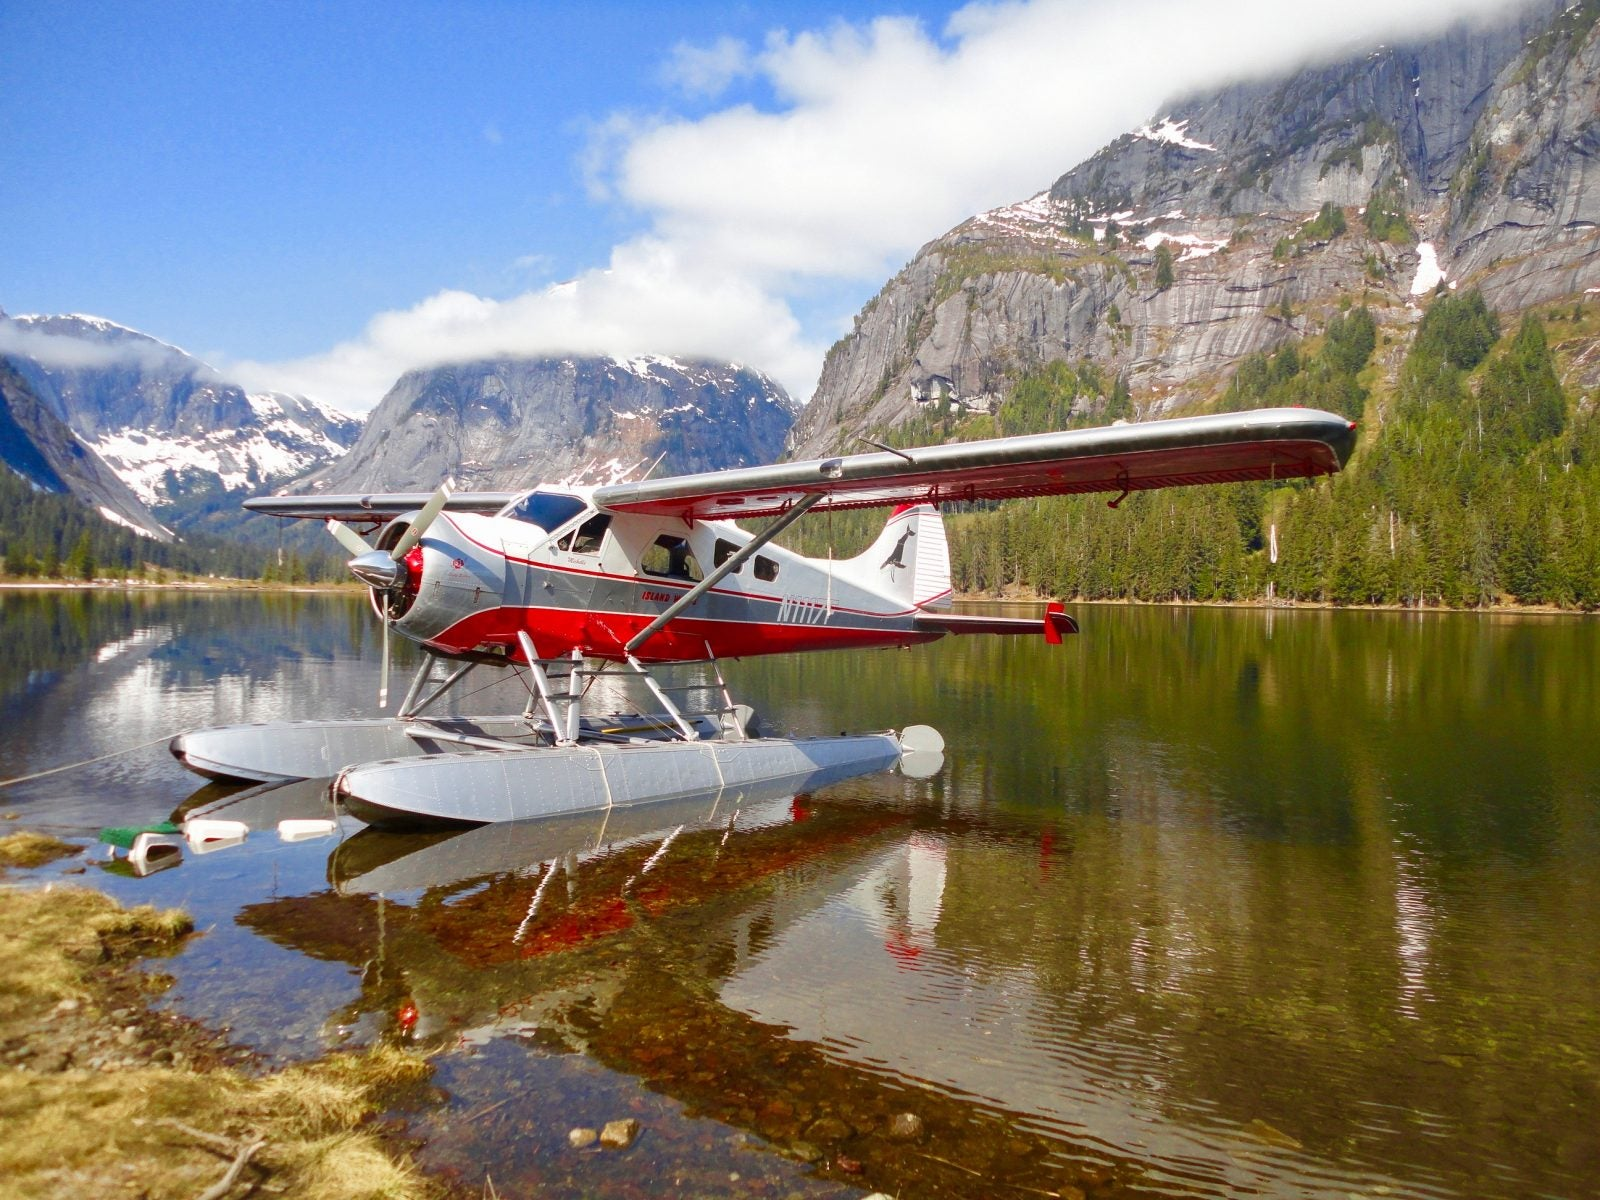 Seaplane landed at Misty Fjords National Monument